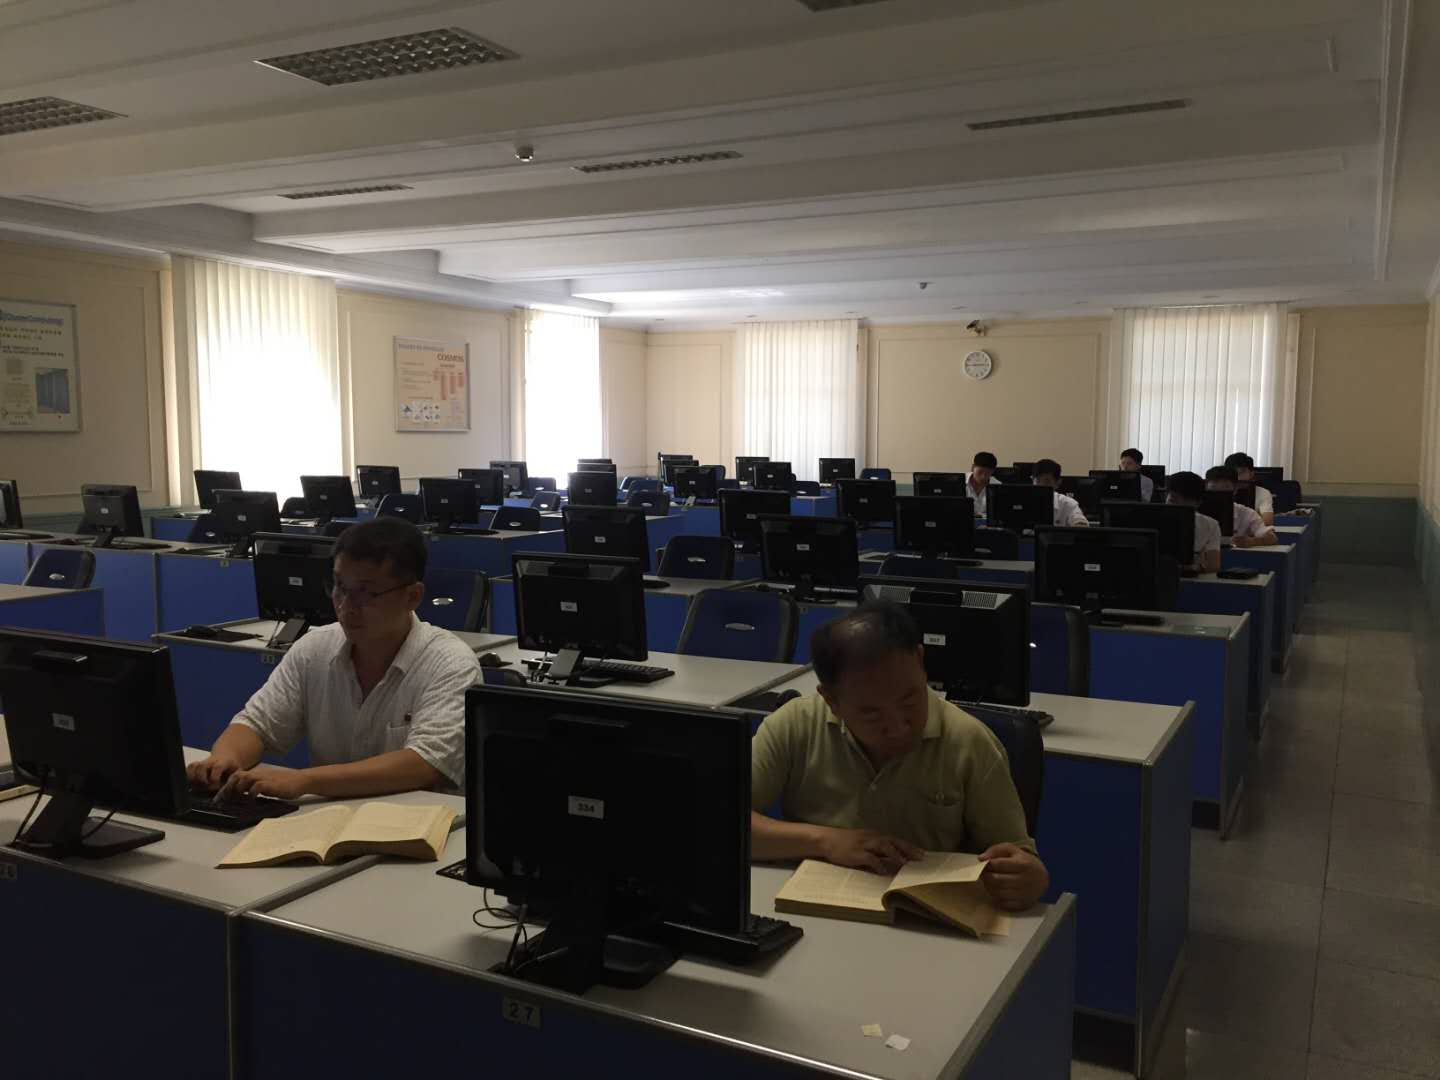 A computer lab of Kim il Sung University